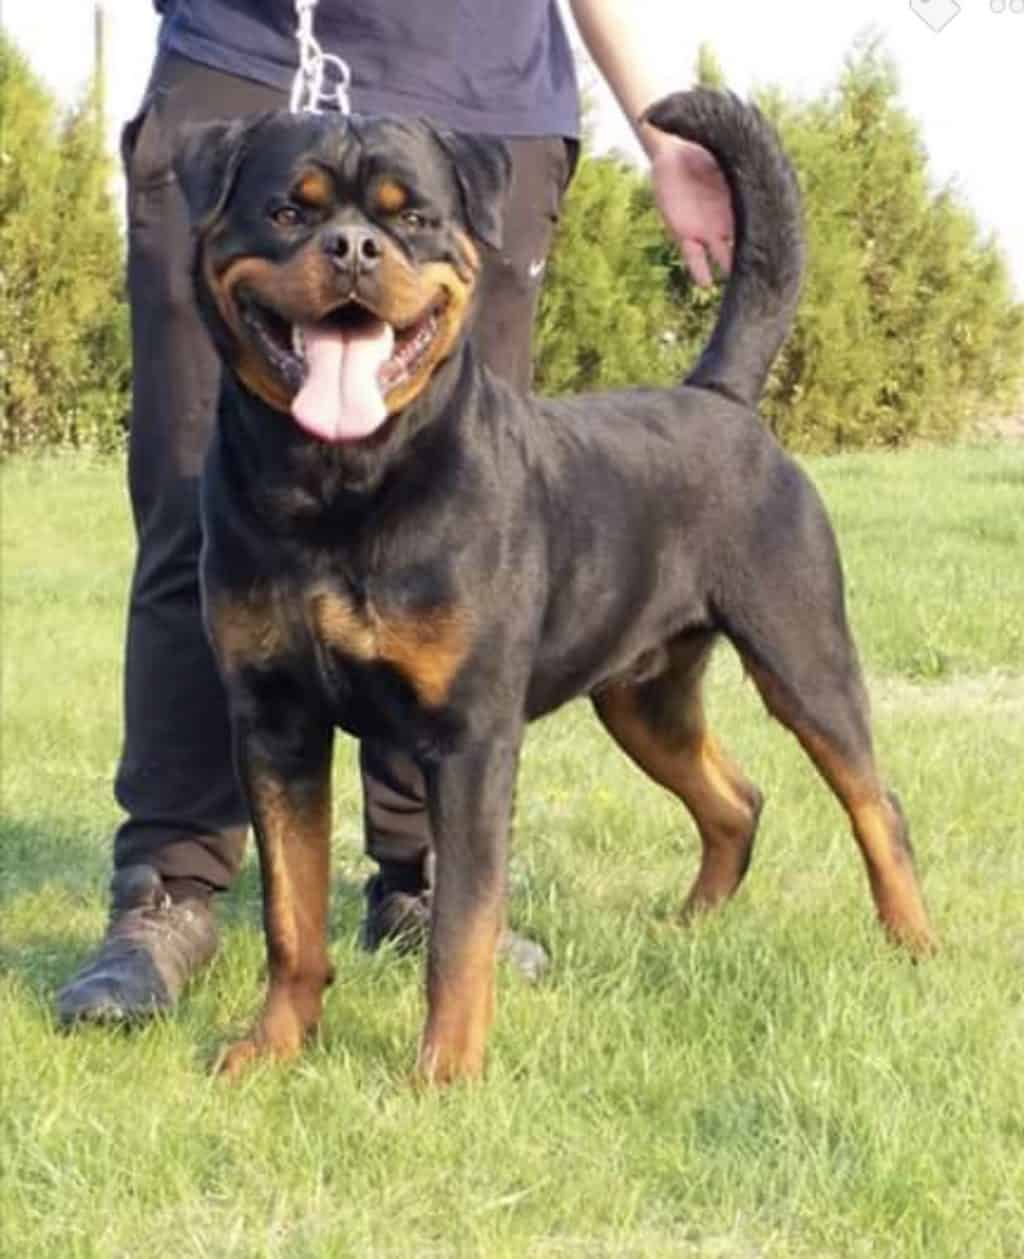 Champion Rottweiler with a tail